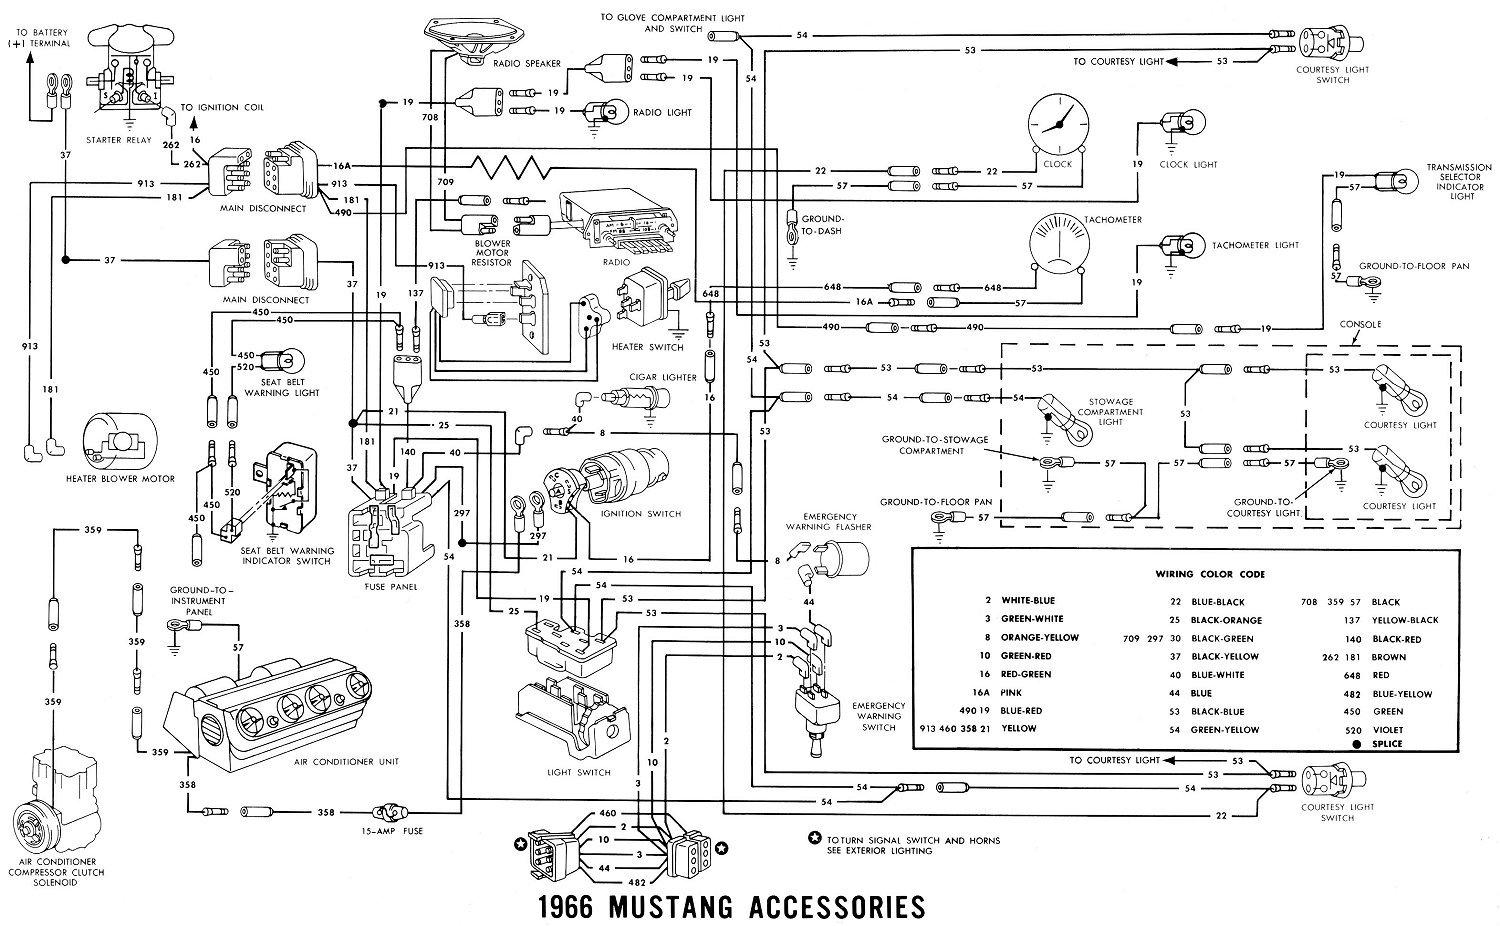 1973 cougar fuse box layout wiring diagrams u2022 rh laurafinlay co uk 77  Mercury Cougar XR7